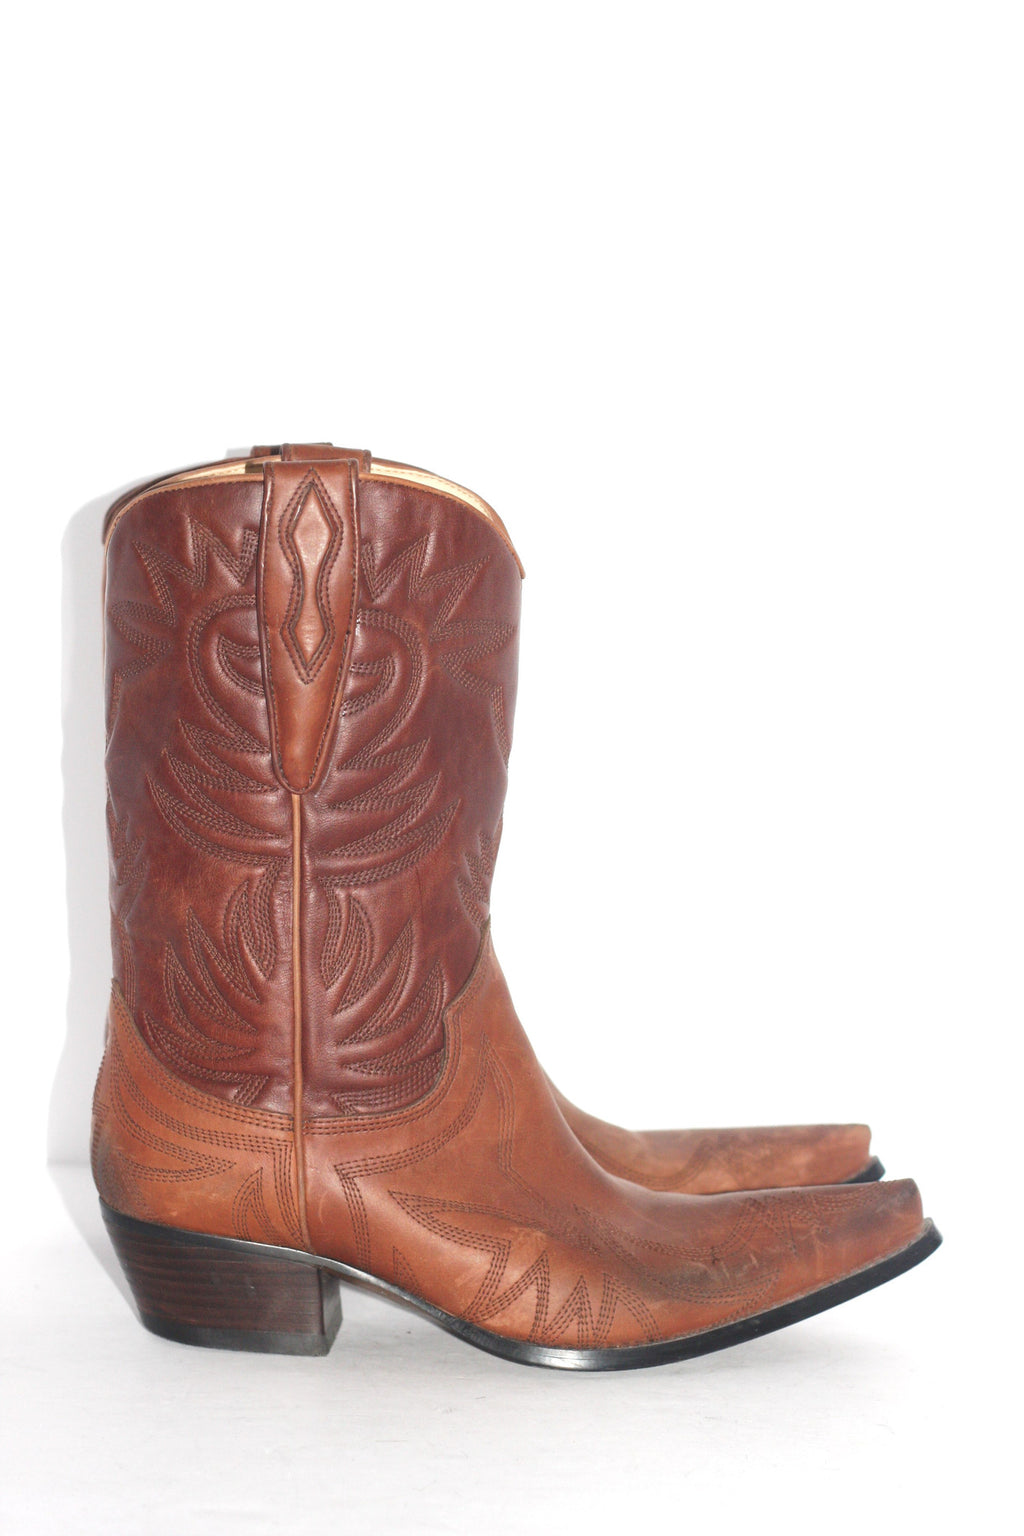 "Guess by Marciano Brown ""Punk"" Cowboy Boots - Joyce's Closet  - 1"